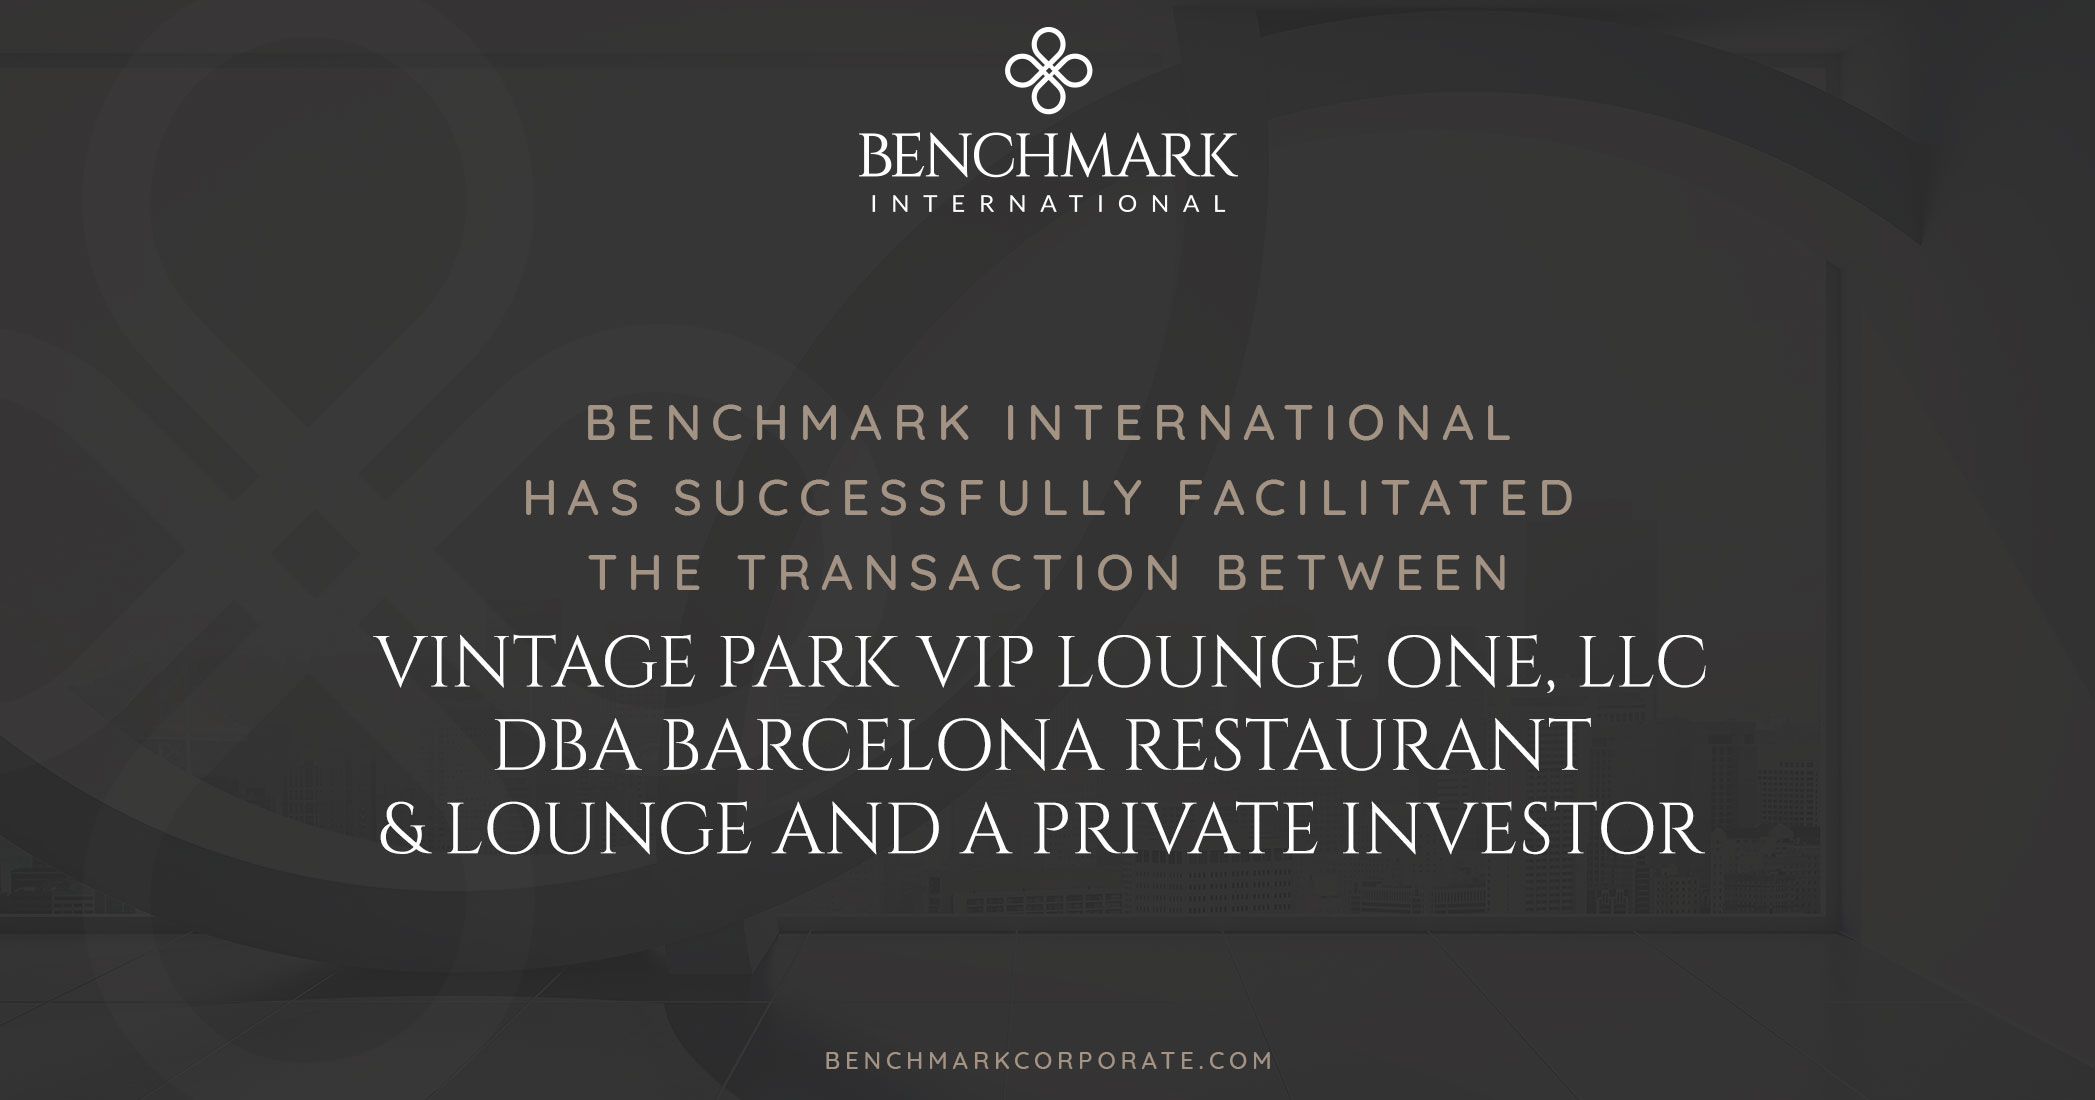 Benchmark International Facilitated the Transaction of Vintage Park VIP Lounge One, LLC dba Barcelona Restaurant & Lounge to a Private Investor